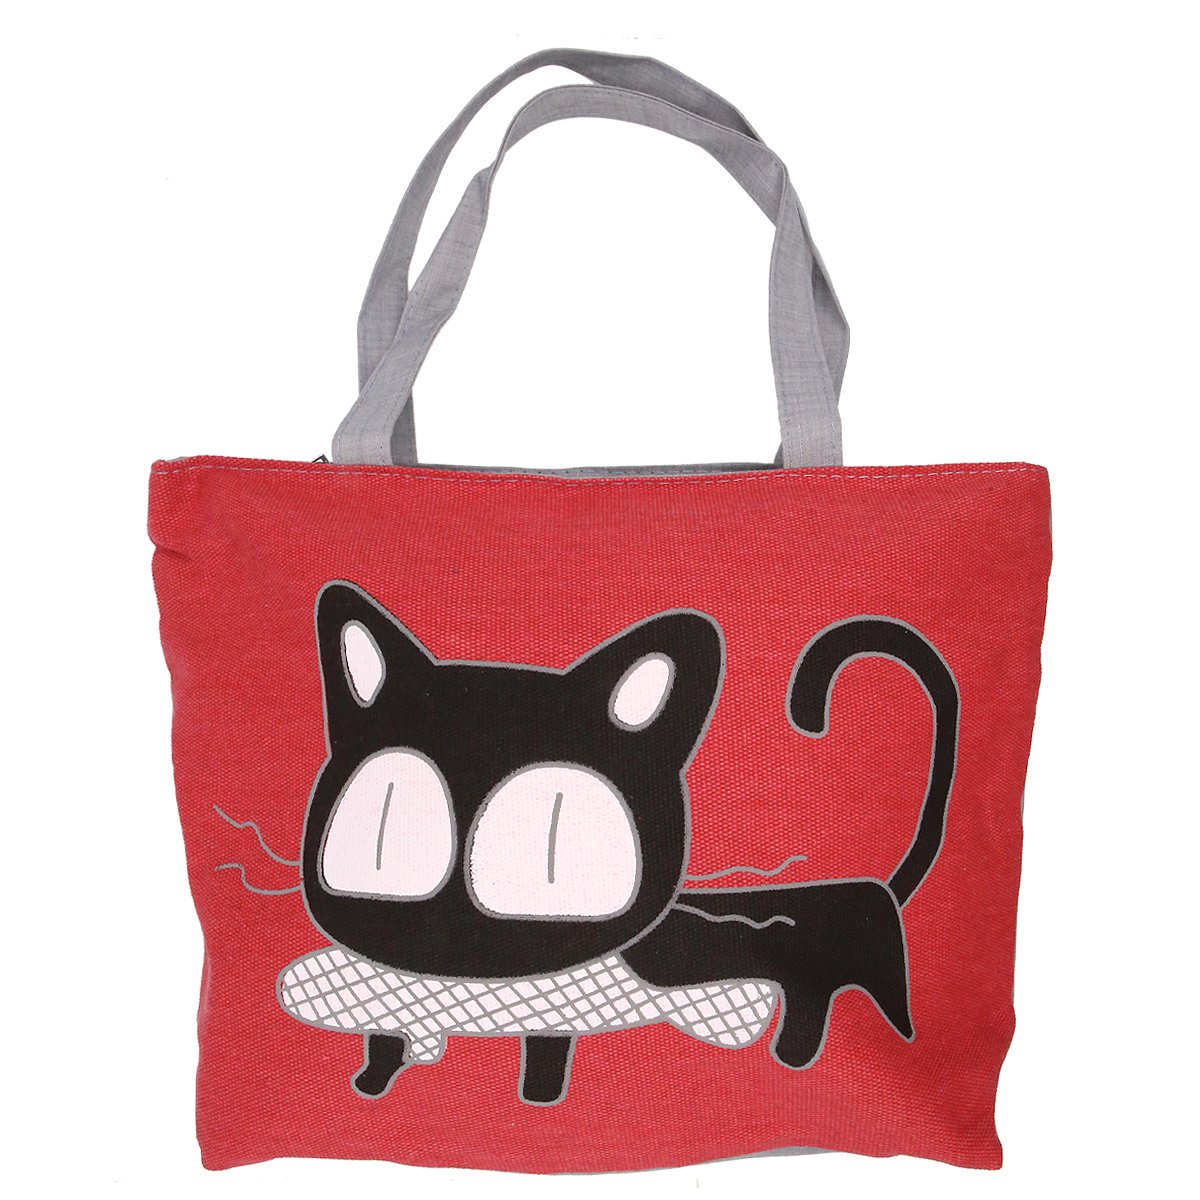 45945dd0fa8e Cute Cat Handbag Large Canvas Tote Bag Reusable Grocery Beach Bag Shopping  Bag With Zipper For Women And Girls(Red)